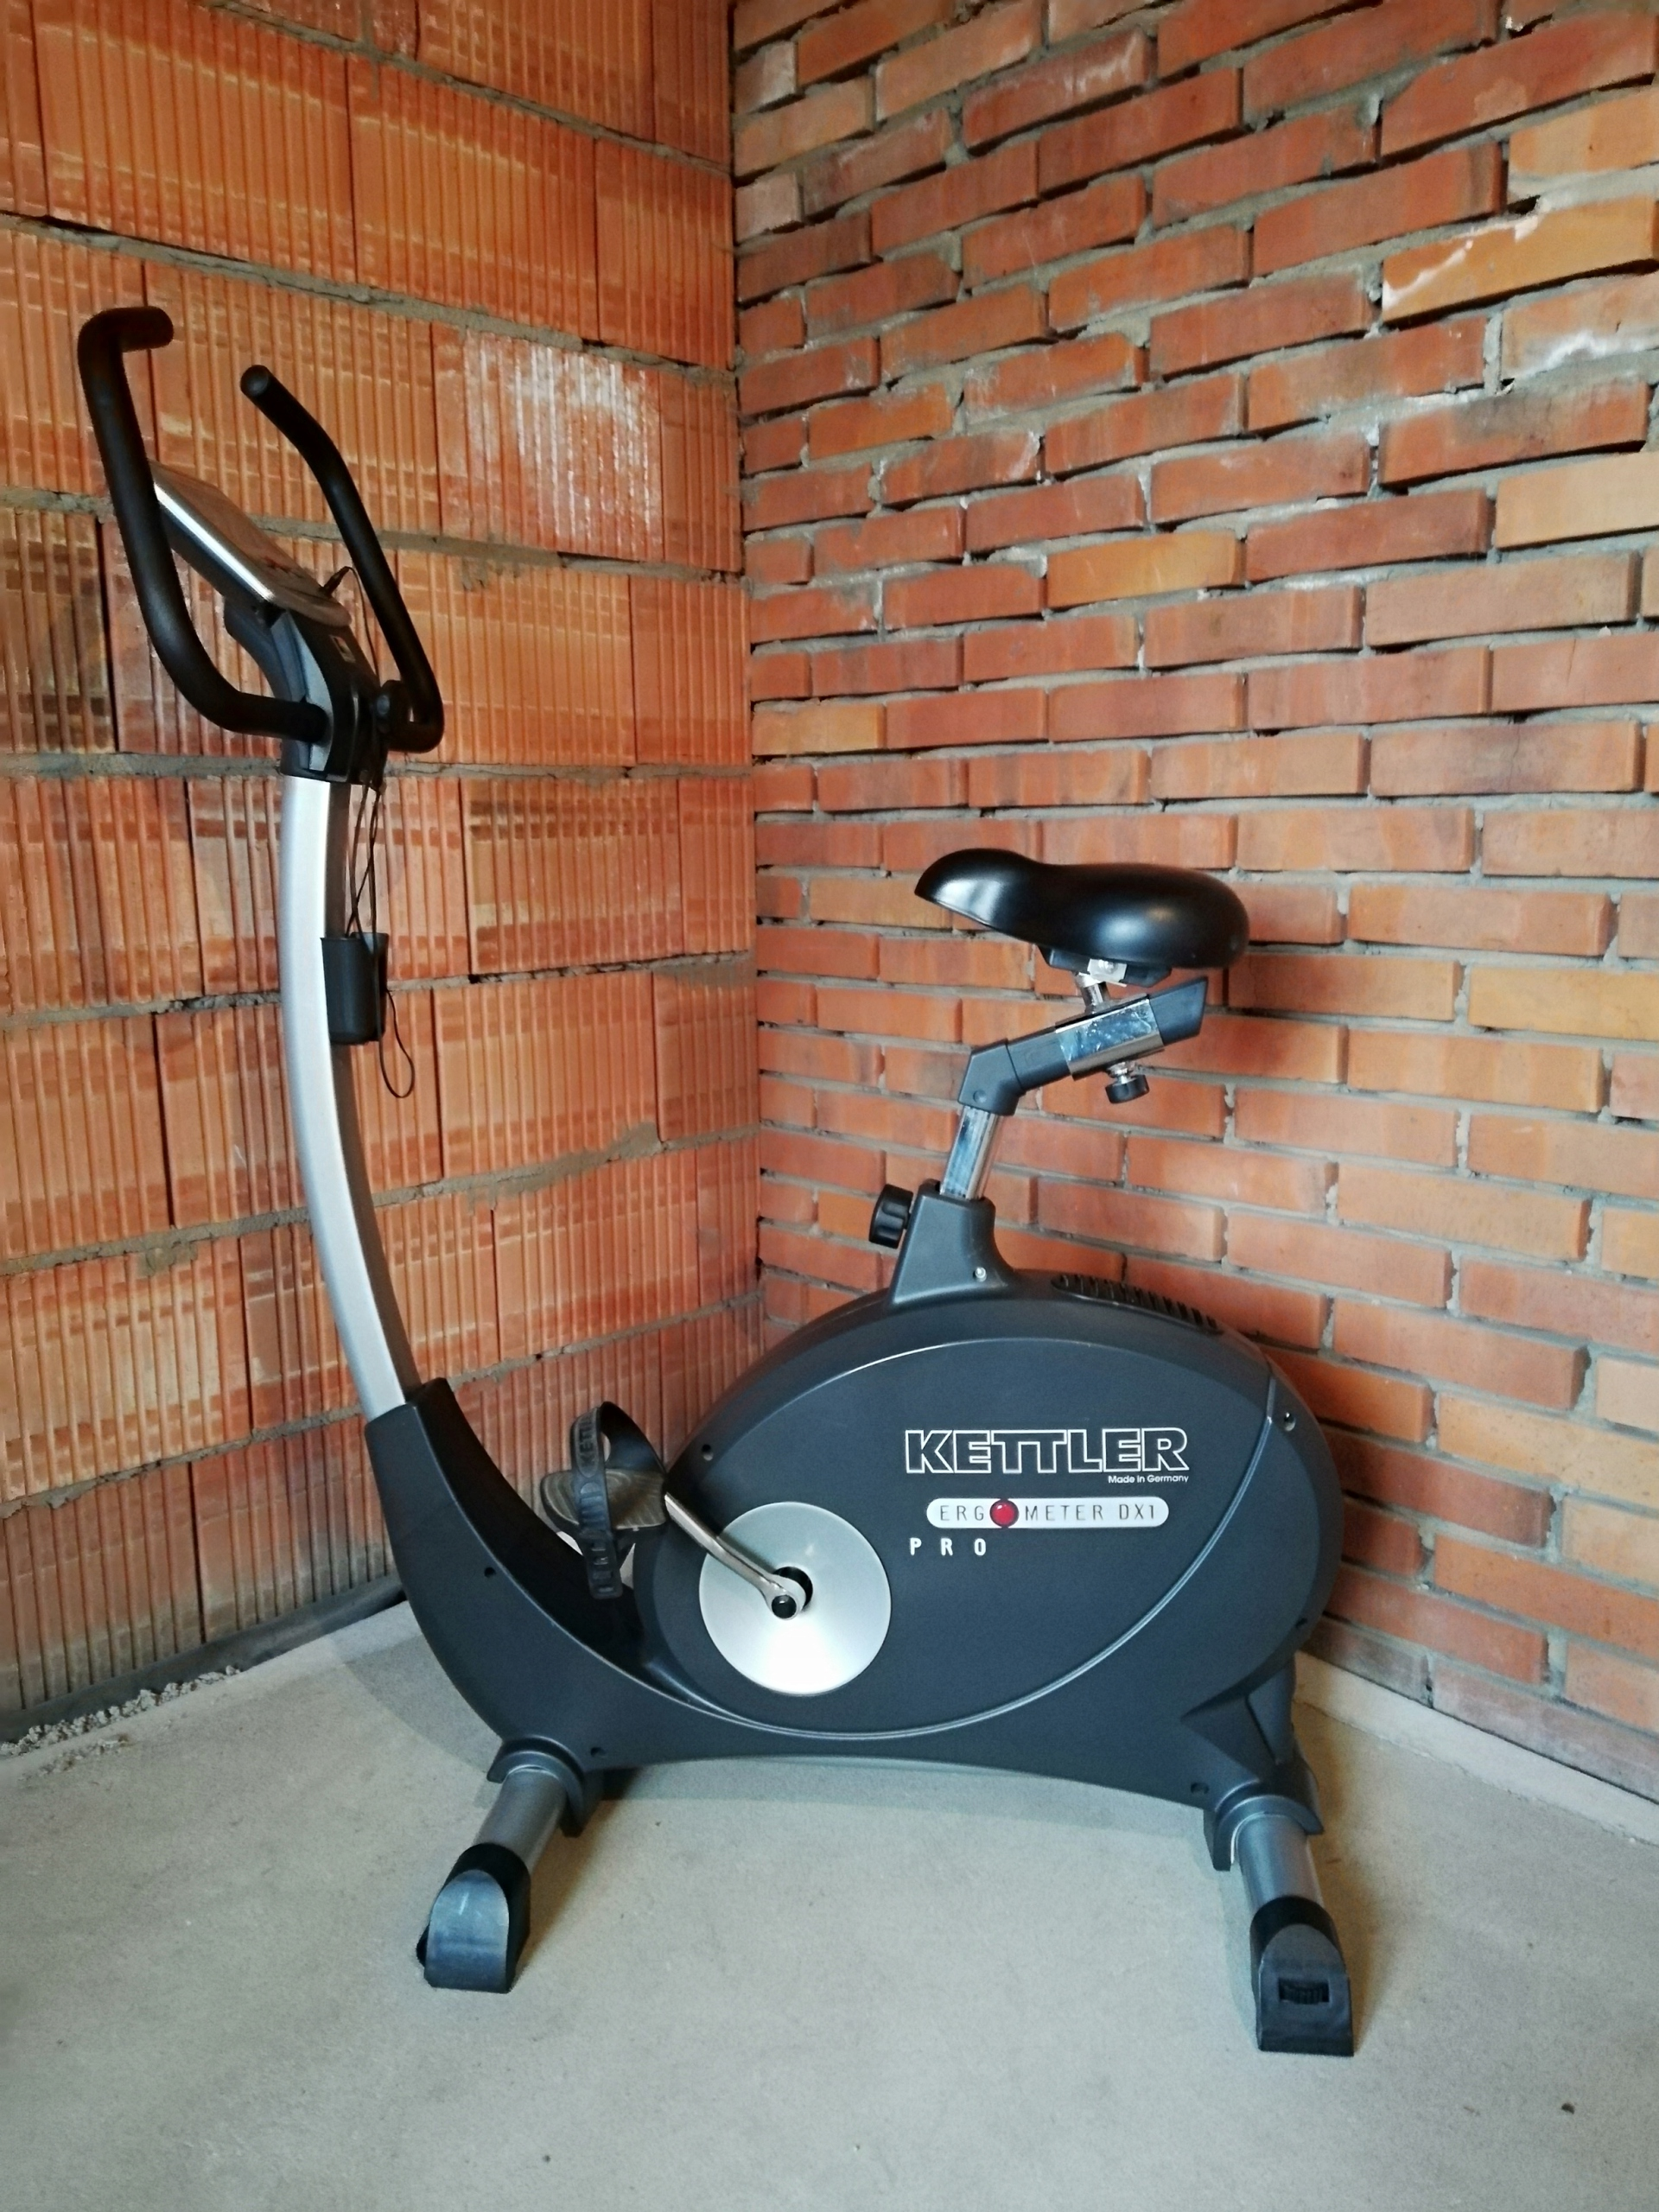 Solidny rower treningowy Kettler Dx1 Pro.